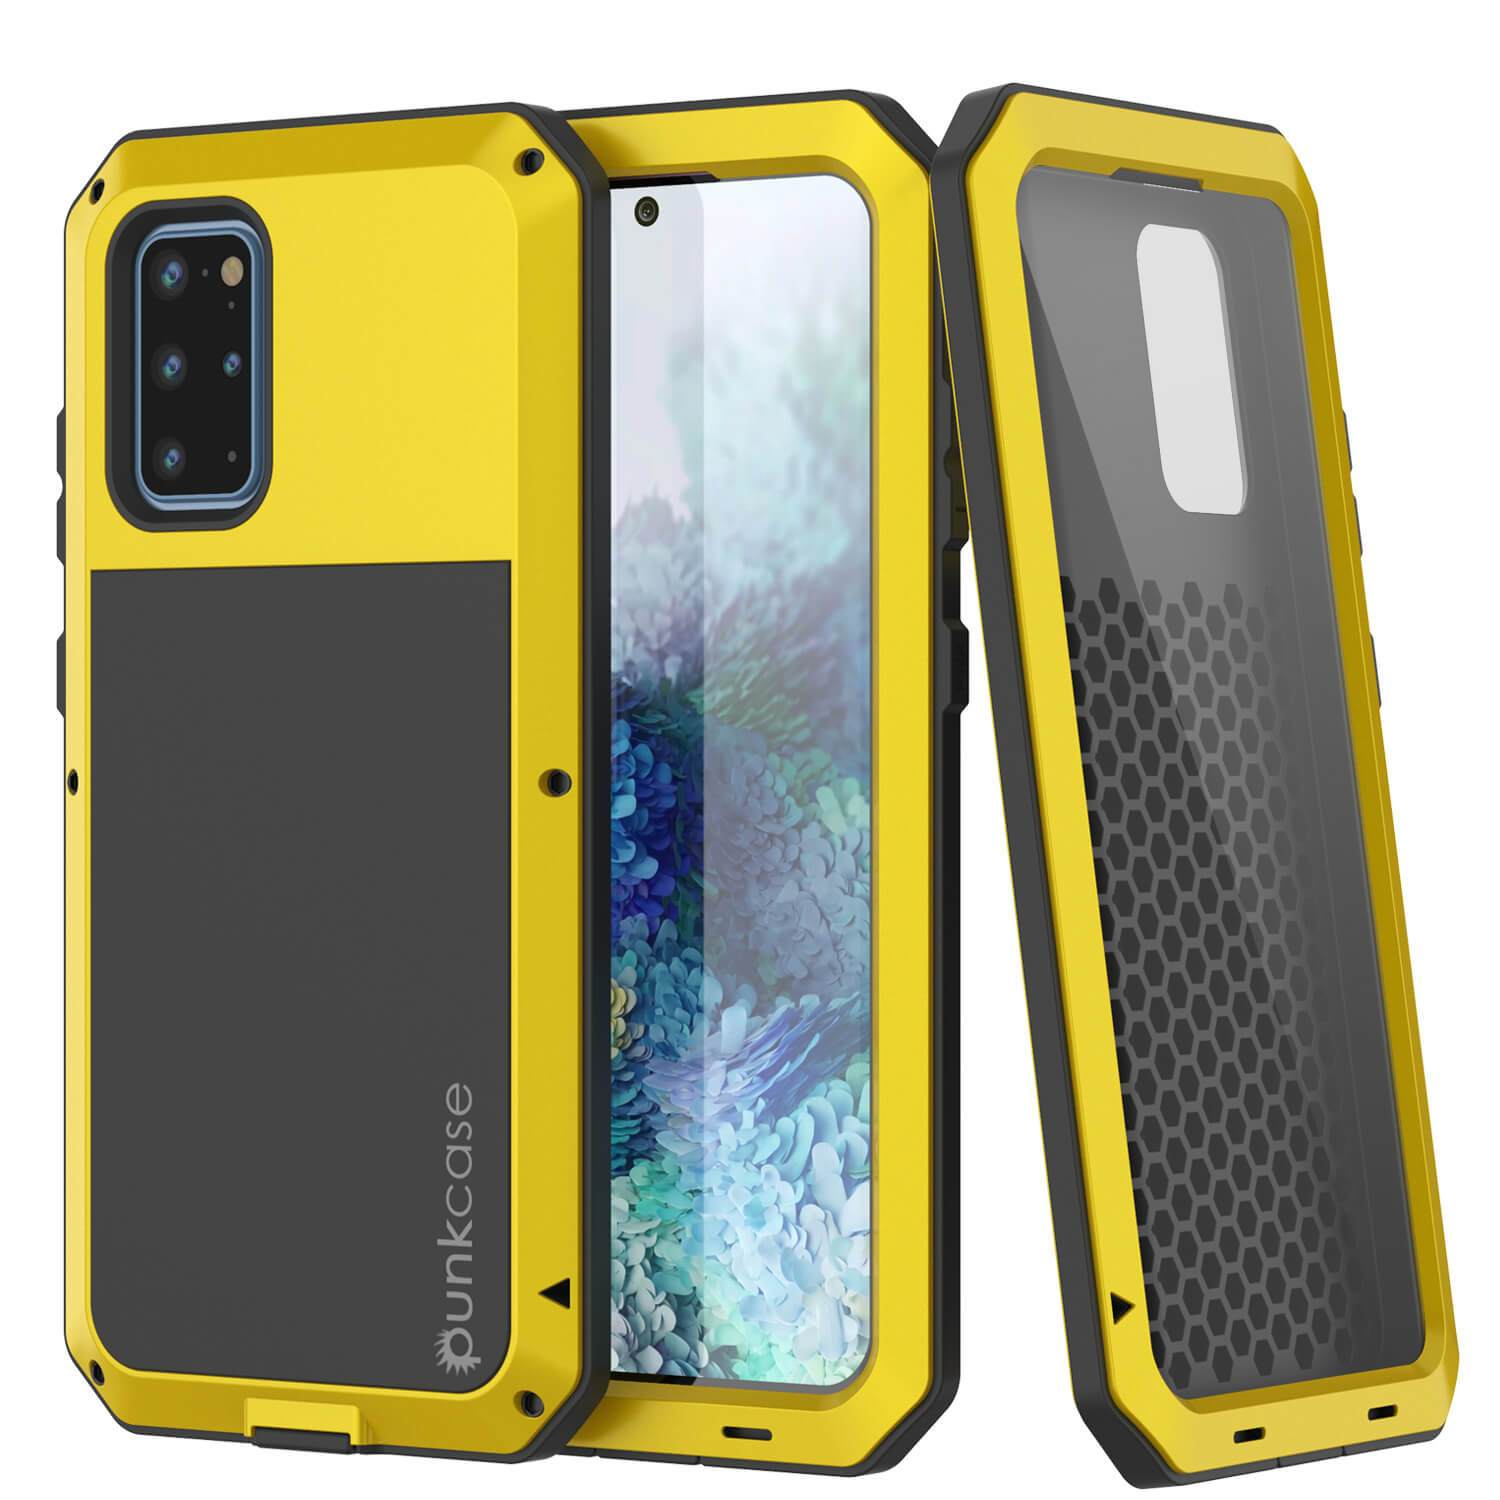 Galaxy s20+ Plus Metal Case, Heavy Duty Military Grade Rugged Armor Cover [Neon]